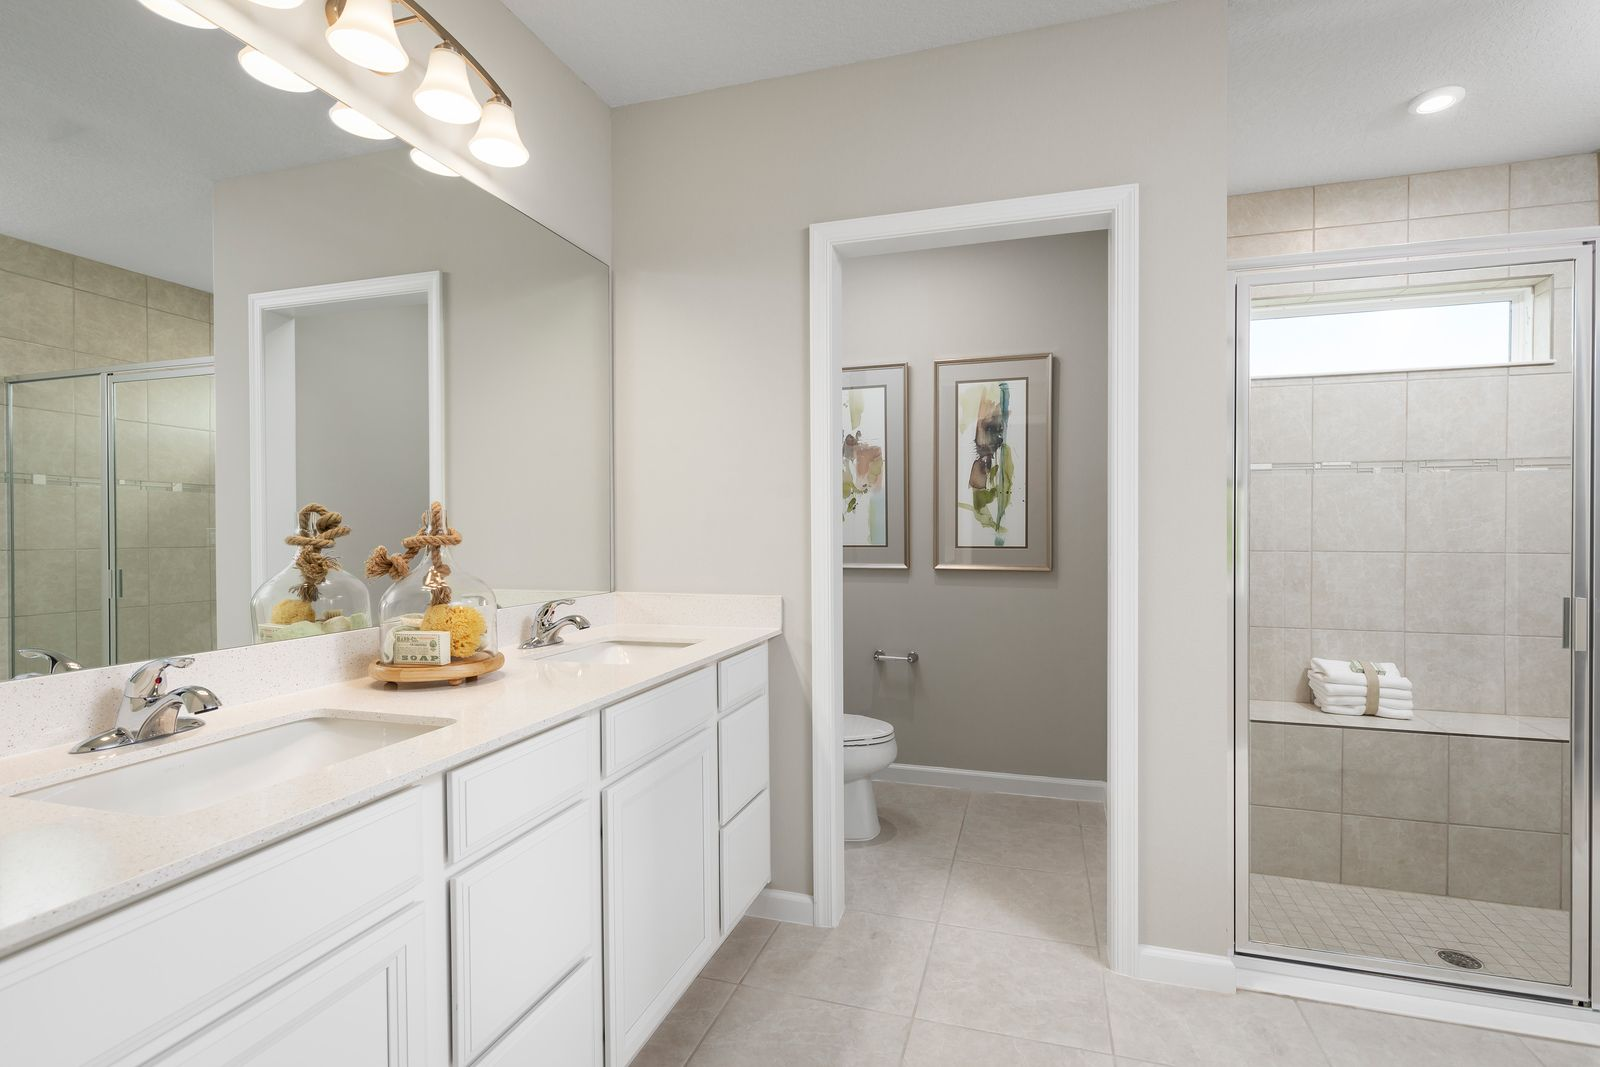 Bathroom featured in the Baymont By Ryan Homes in Orlando, FL